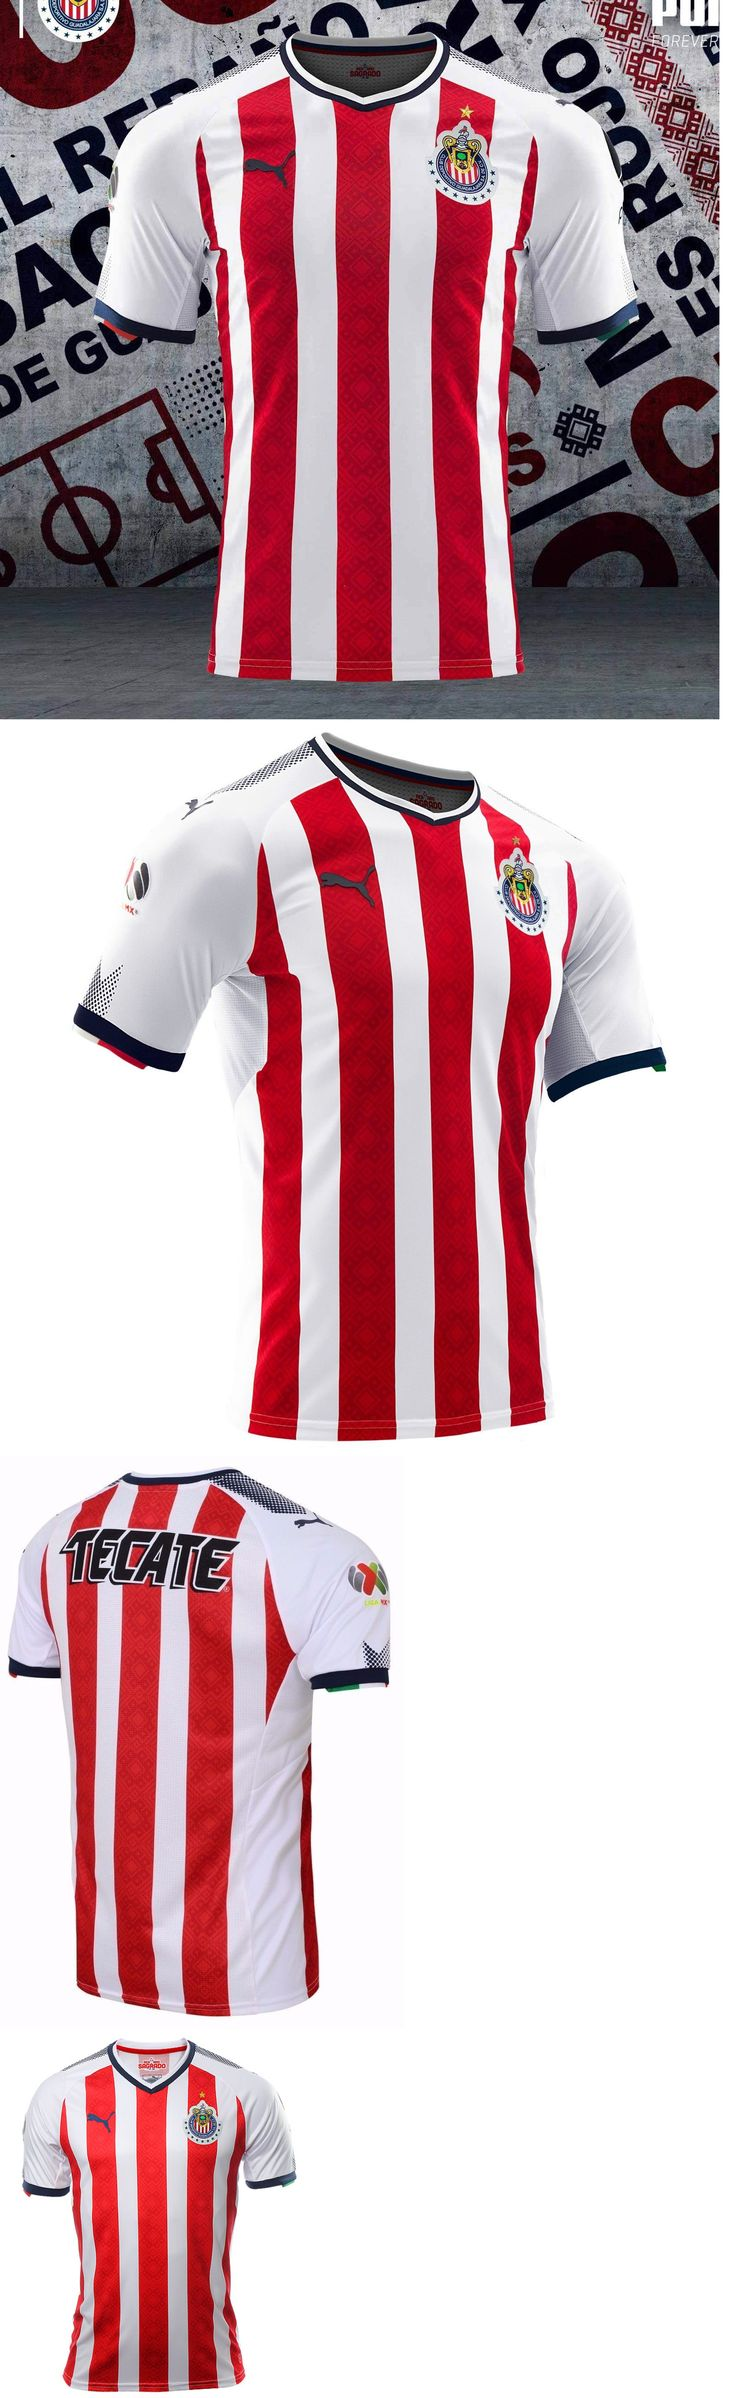 Soccer-International Clubs 2887: Puma Chivas De Guadalajara Authentic Players Home Jersey 2017 18. -> BUY IT NOW ONLY: $140 on eBay!